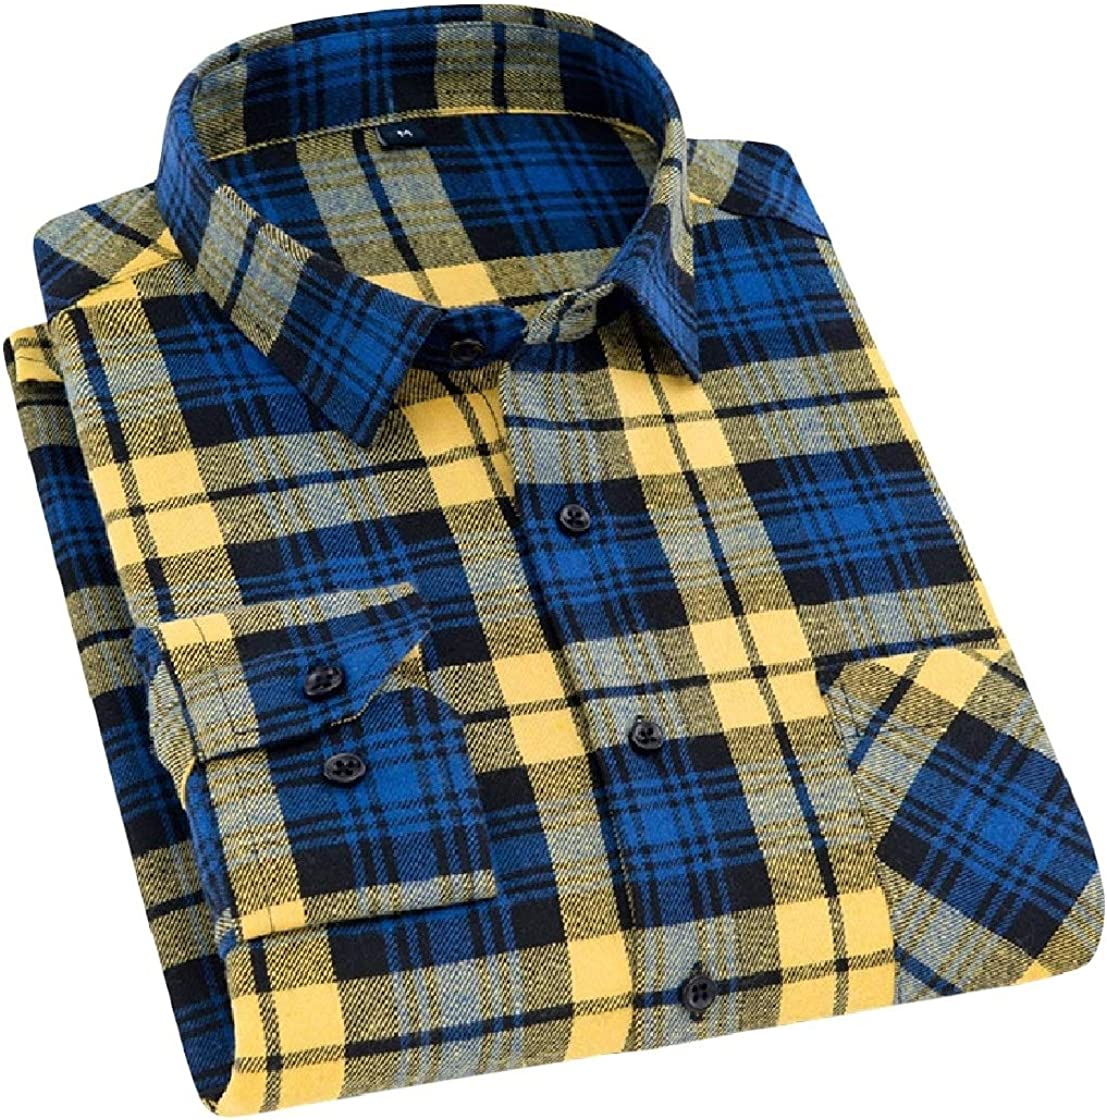 YUNY Men Turn Down Collar Long Sleeve Plaid Casual Relaxed-Fit Flannel Shirt AS7 L